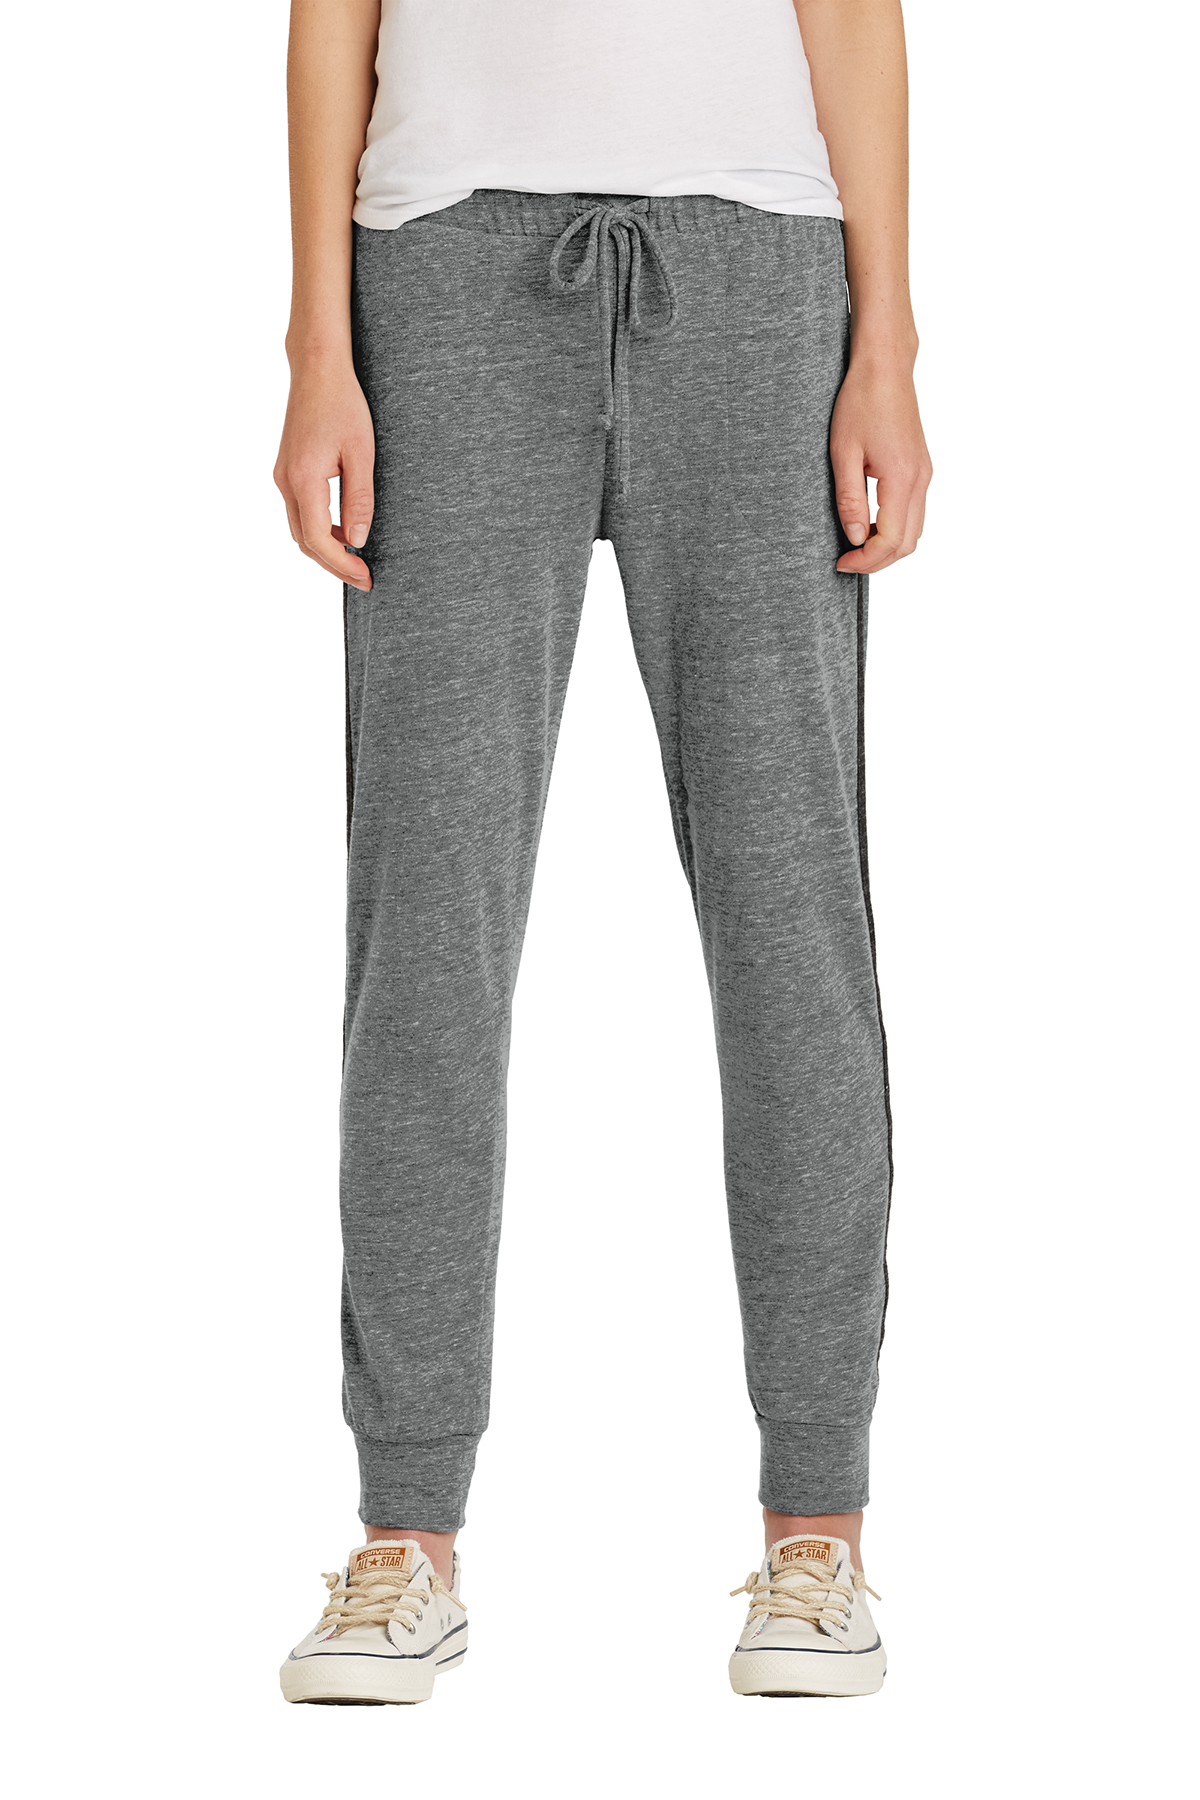 cfdd0594d Alternative Women's Eco-Jersey™ Jogger | Sweatpants | Sweatshirts ...